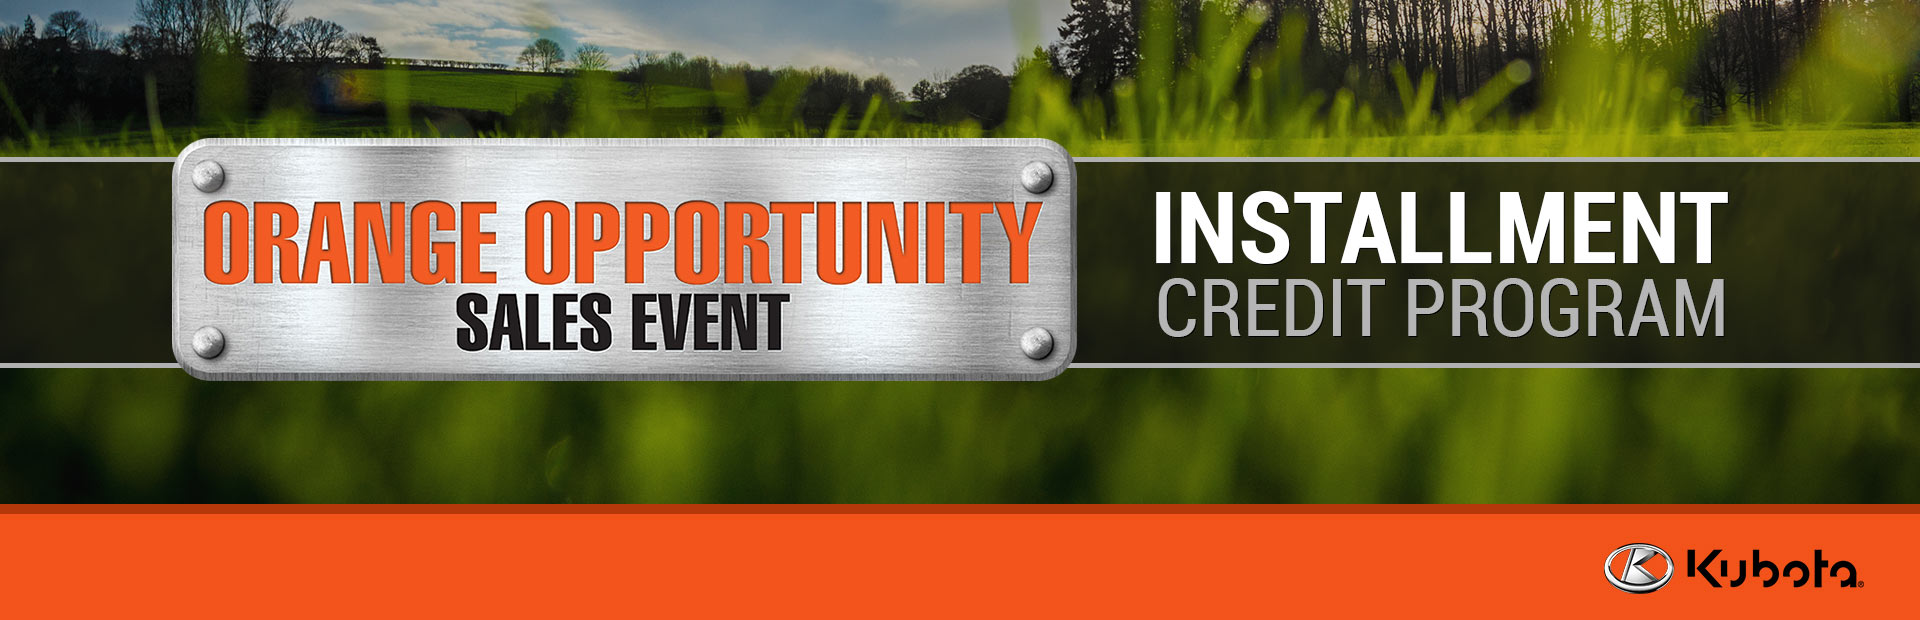 Orange Opportunity - Installment Credit Promotion